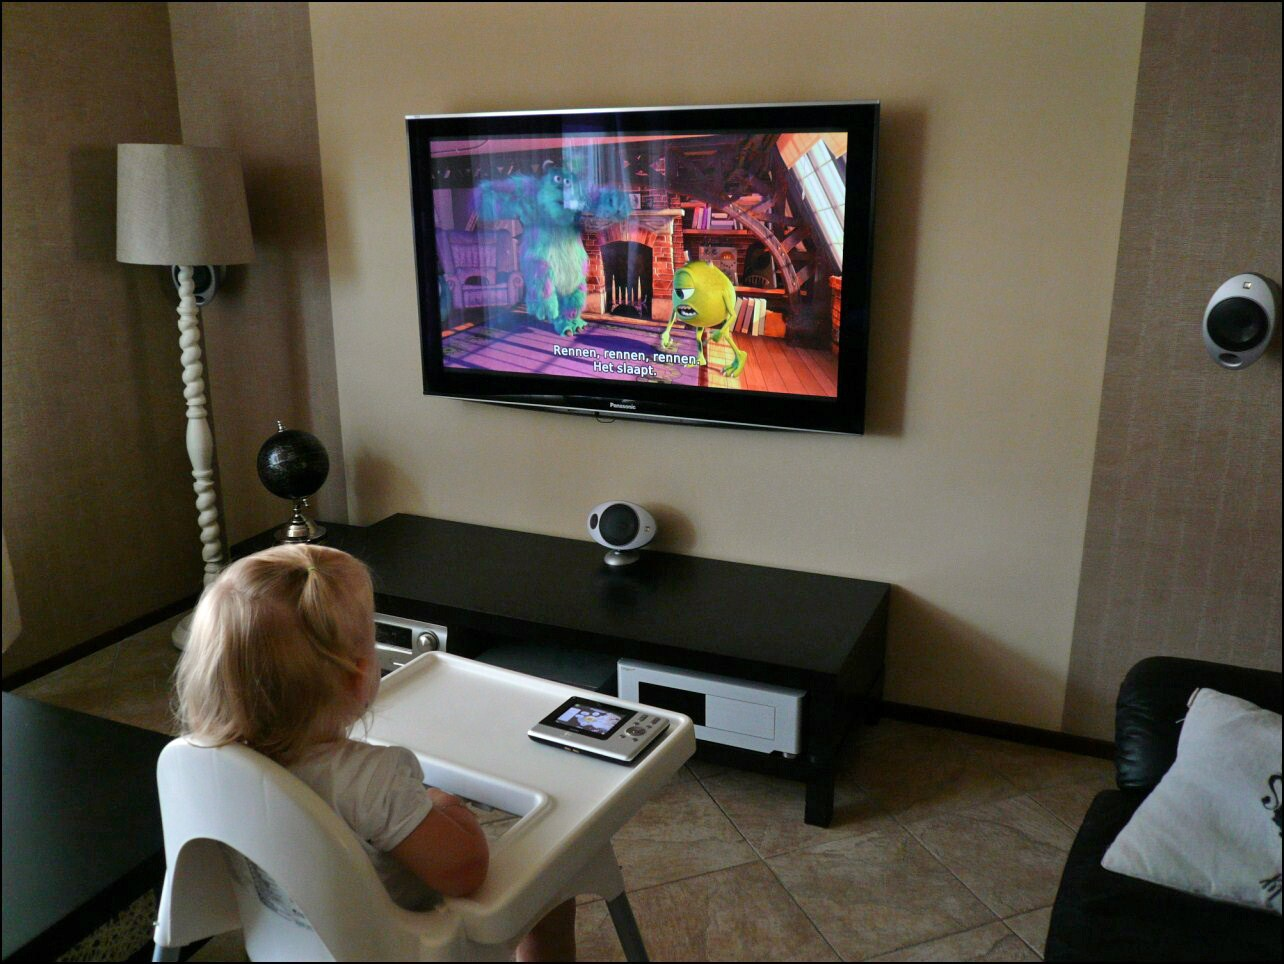 PeterB 5 Daughter Home Theater